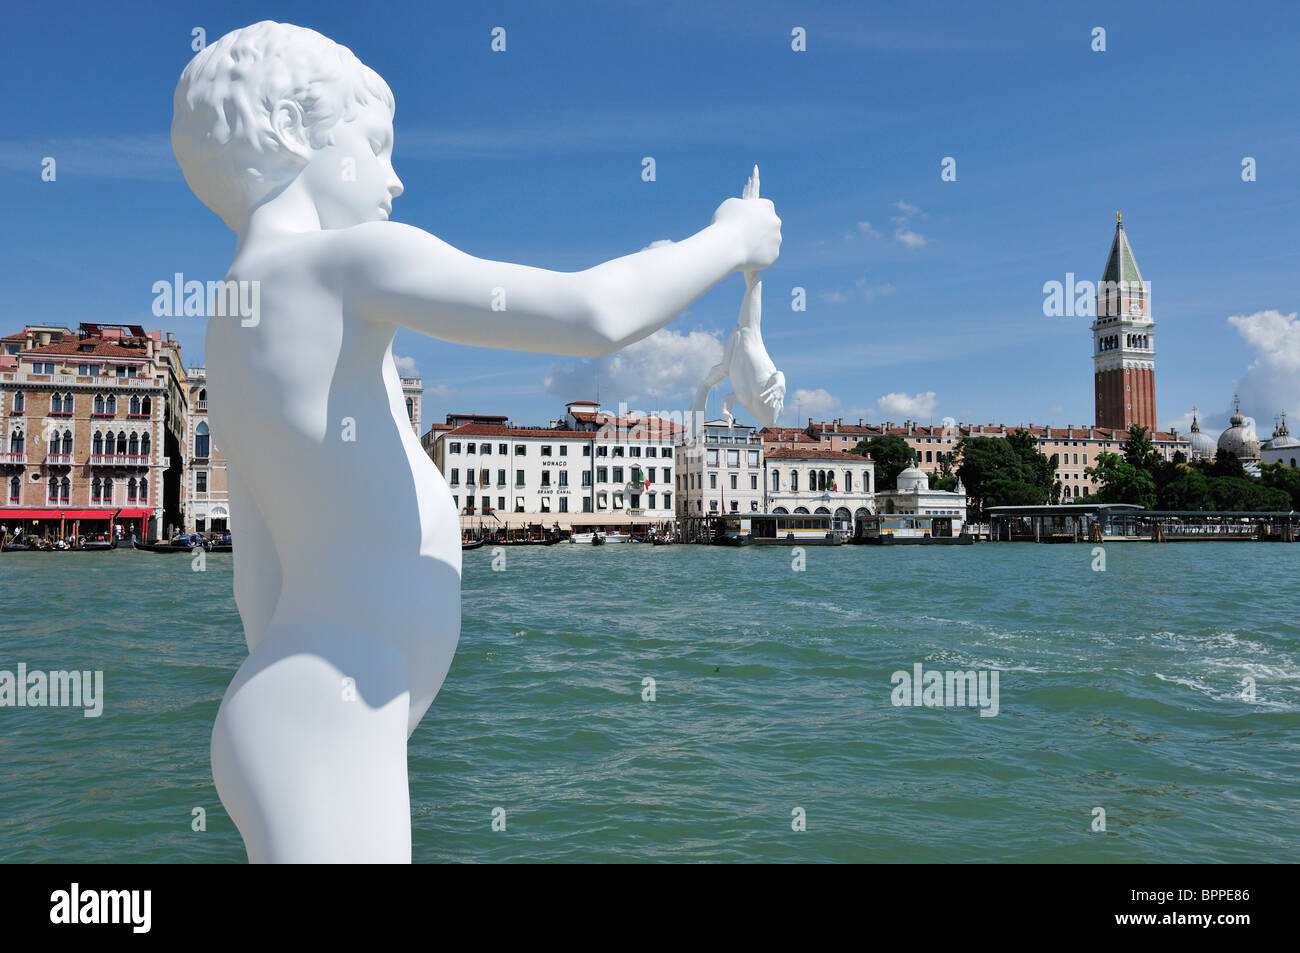 Venice. Italy. Boy with a Frog by the artist Charles Ray on the Punta della Dogana - Stock Image